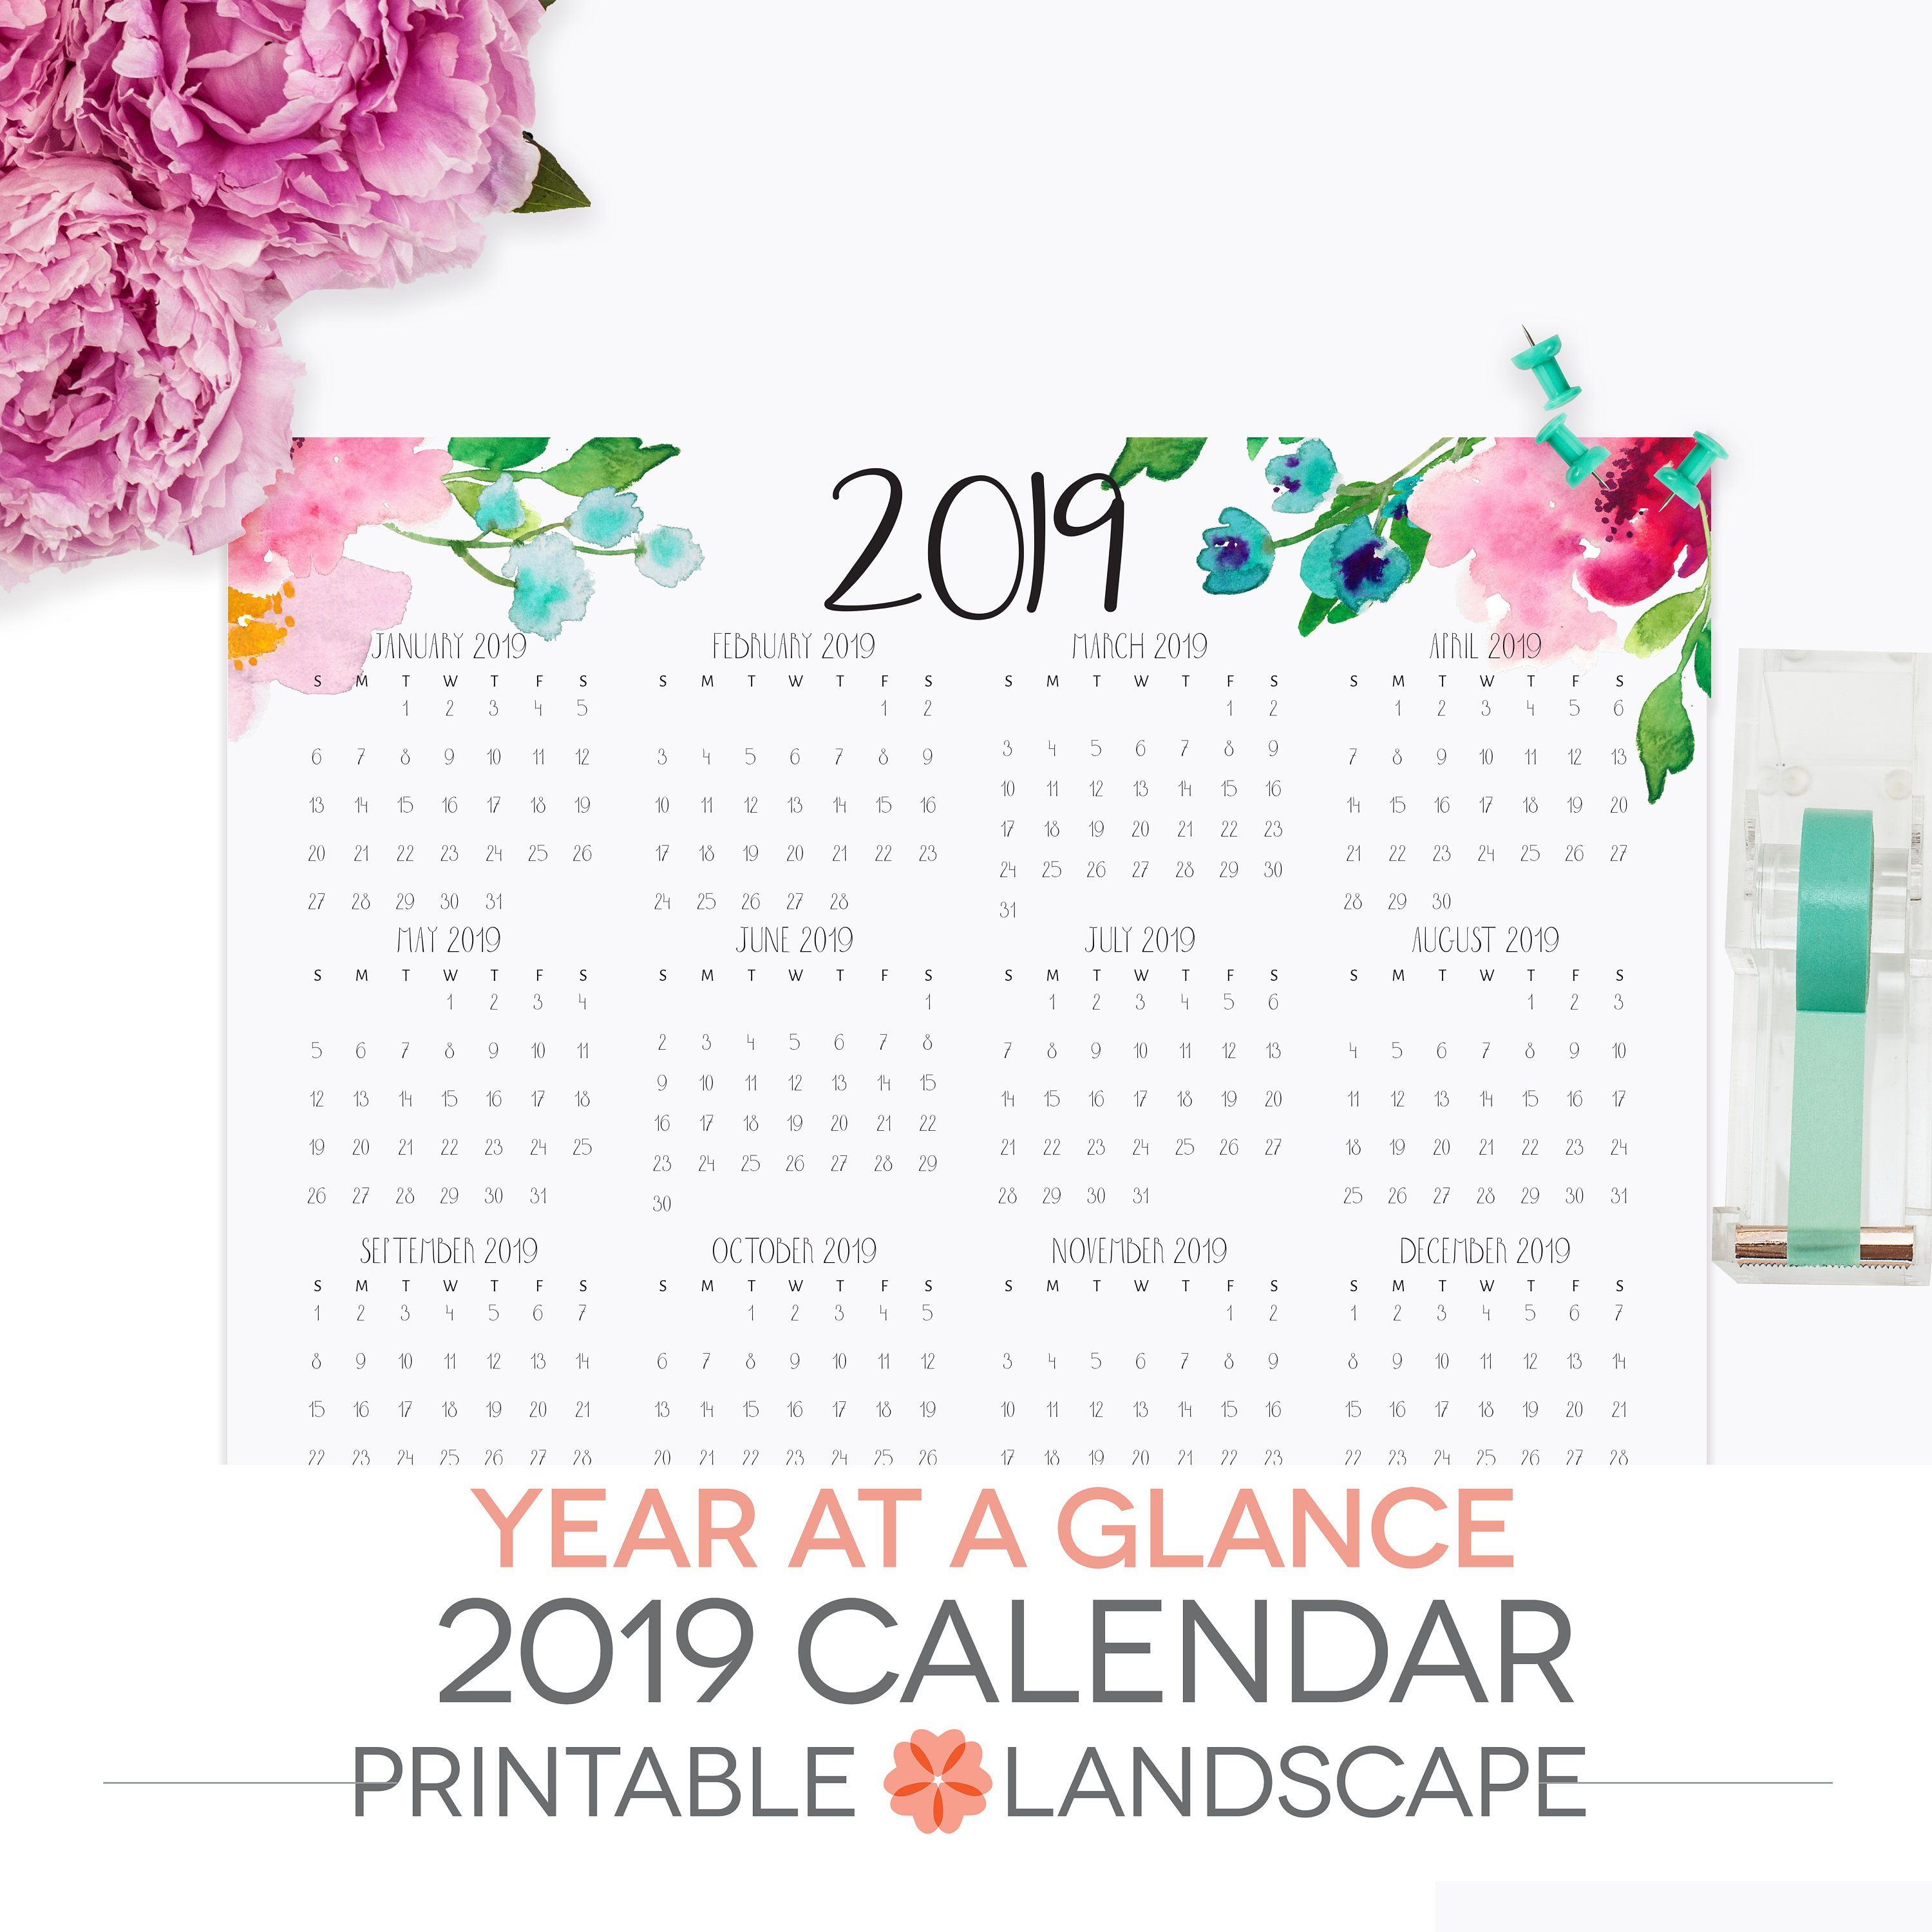 Year At A Glance Calendar 2019 Printable Letter Size | Etsy X Calendar 2019 Download